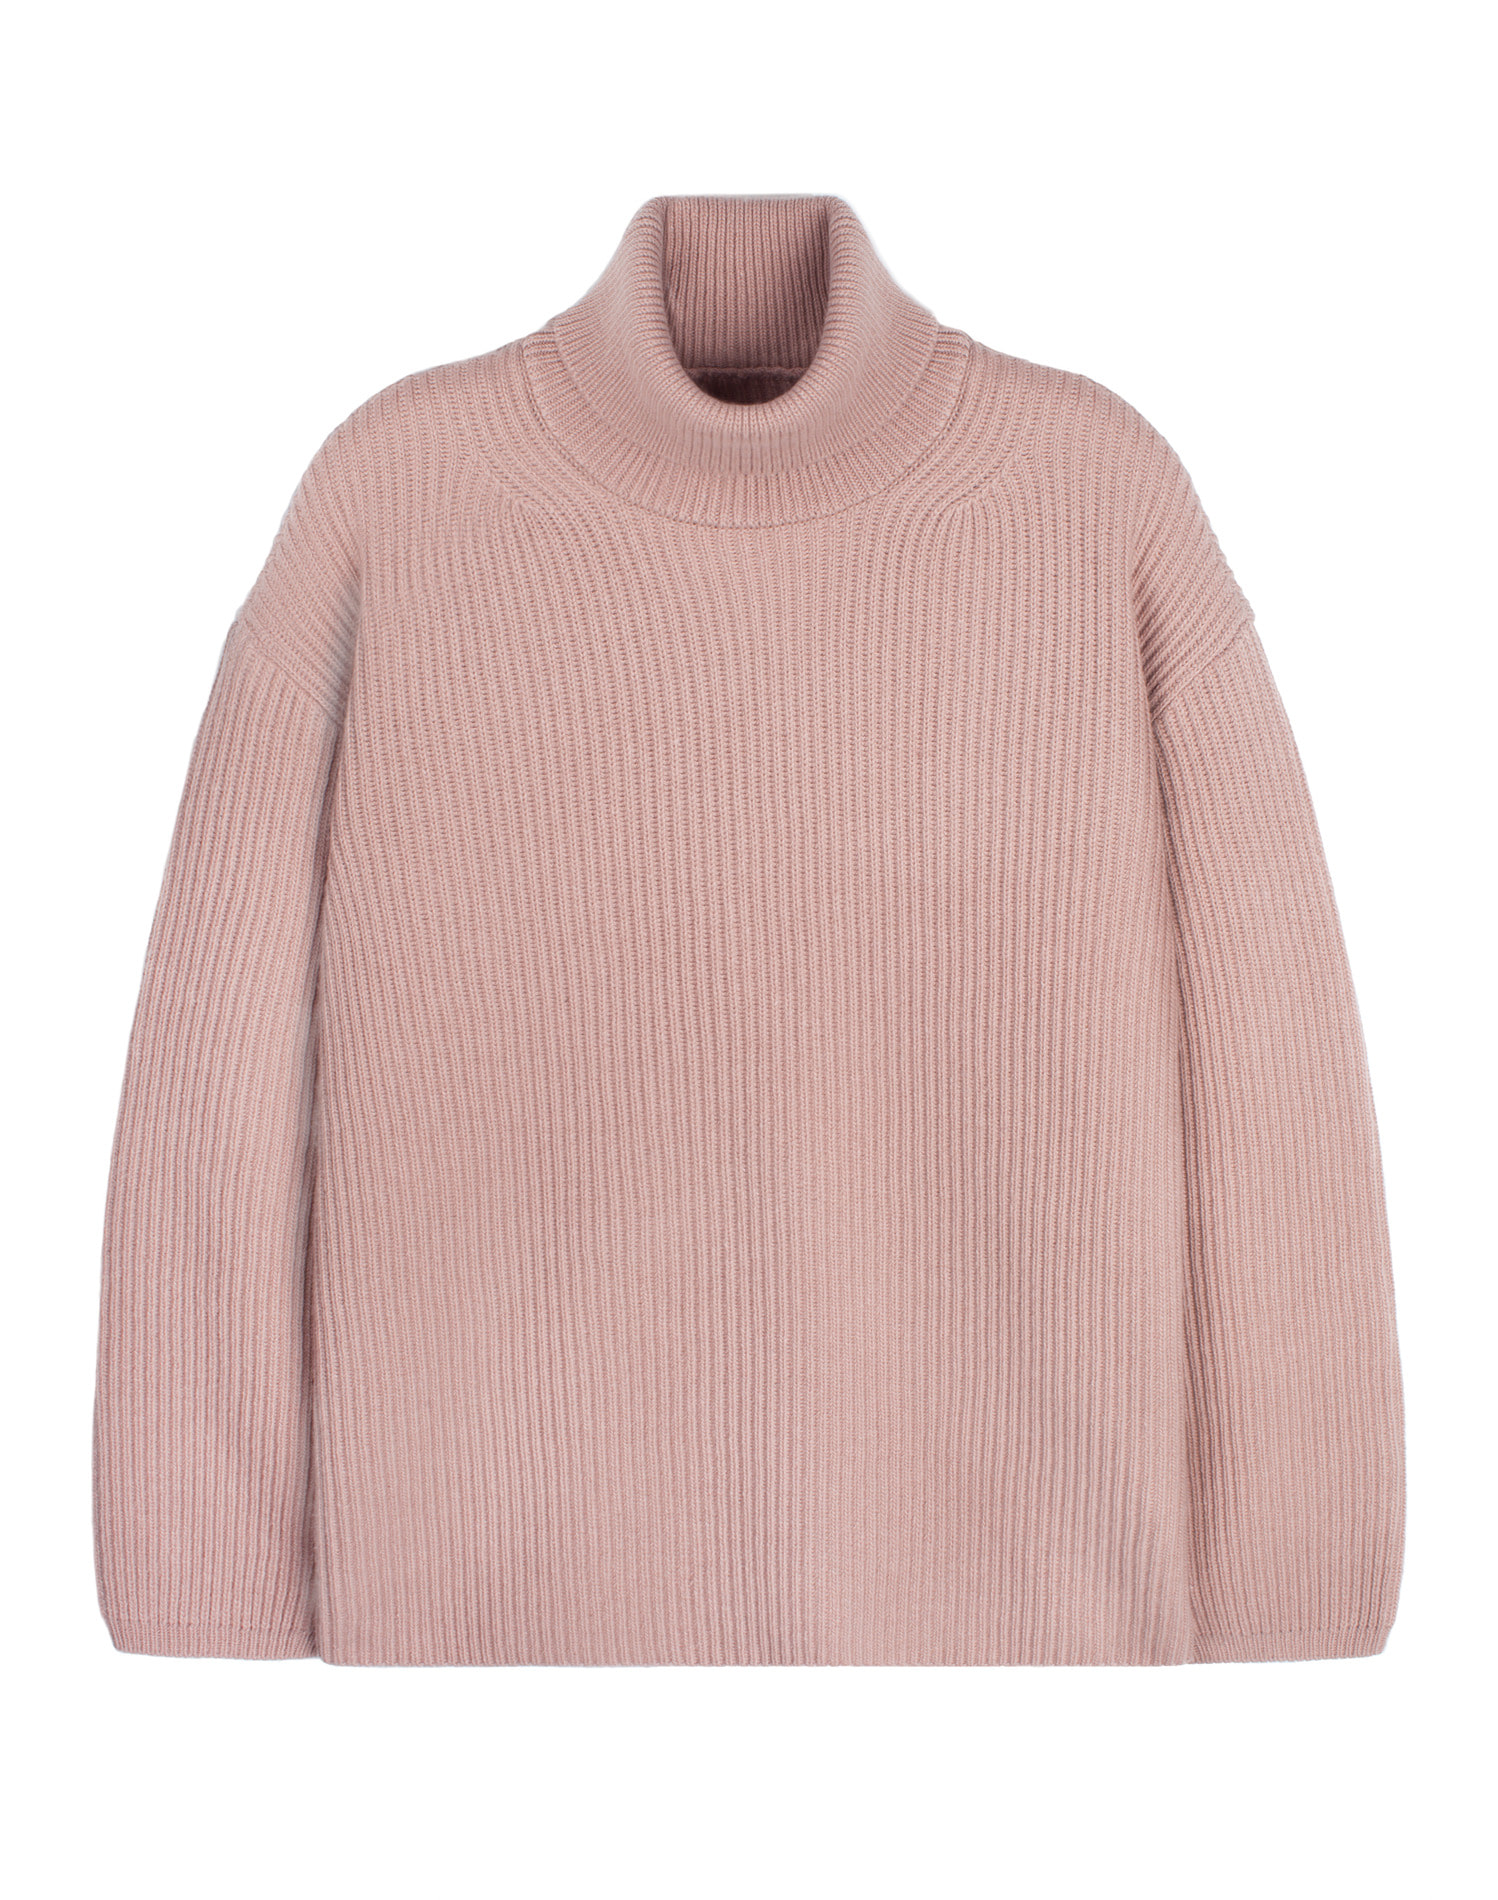 Oversize Neck Knit Pink / Over Fit